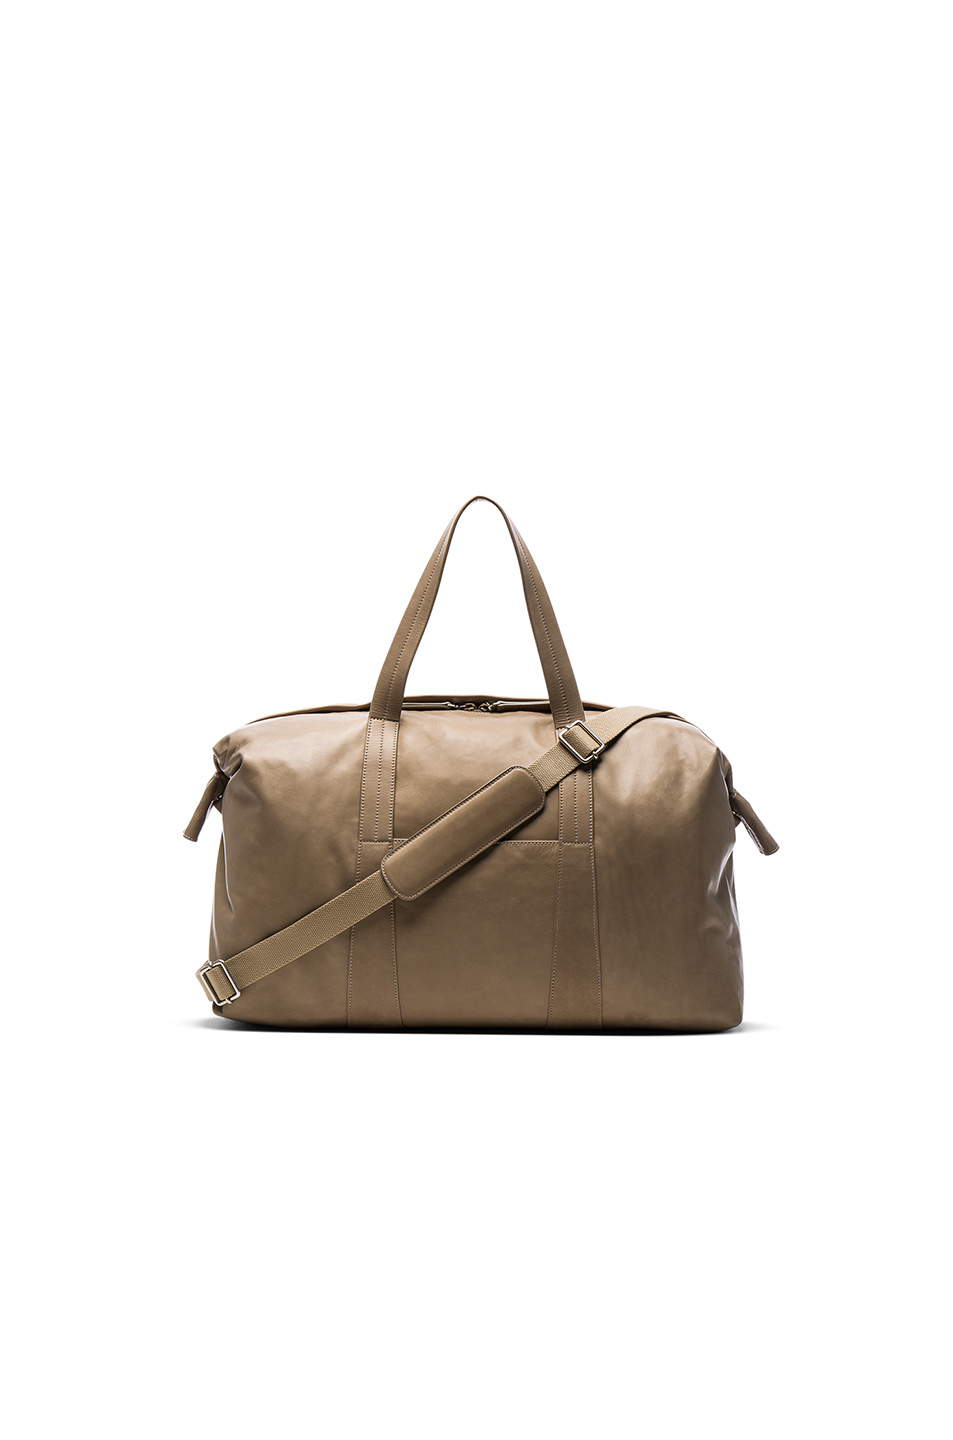 Maison Margiela Duffel Bag in Neutrals